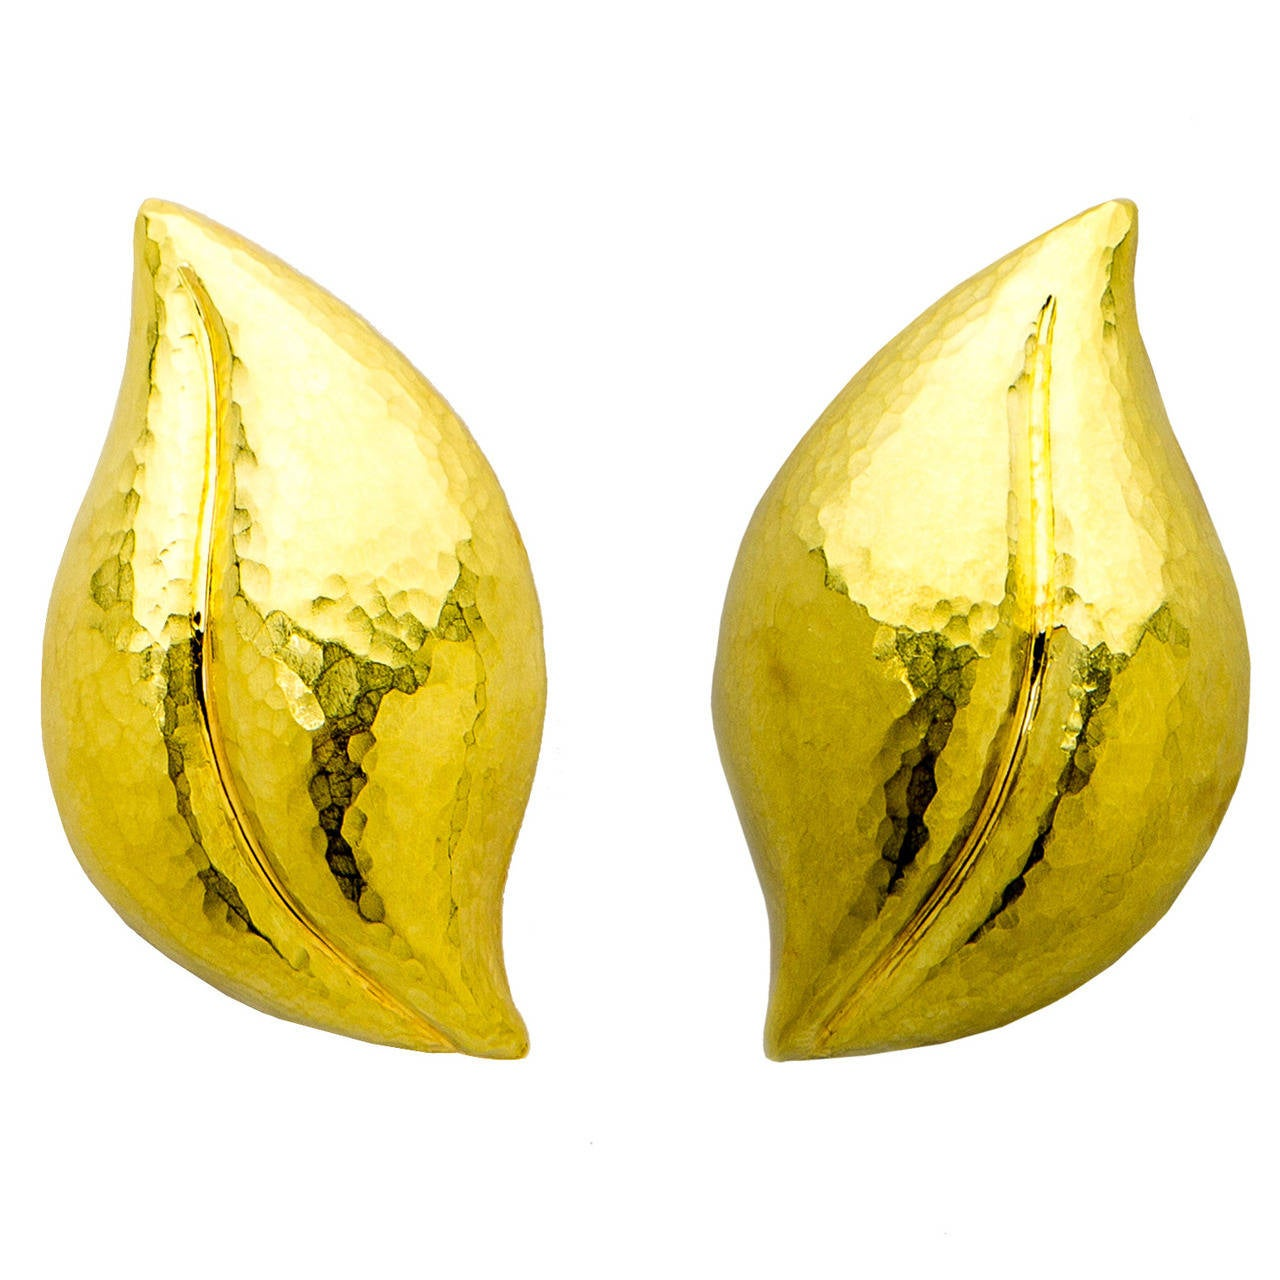 Tiffany & Co. Paloma Picasso Gold Leaf Earrings For Sale